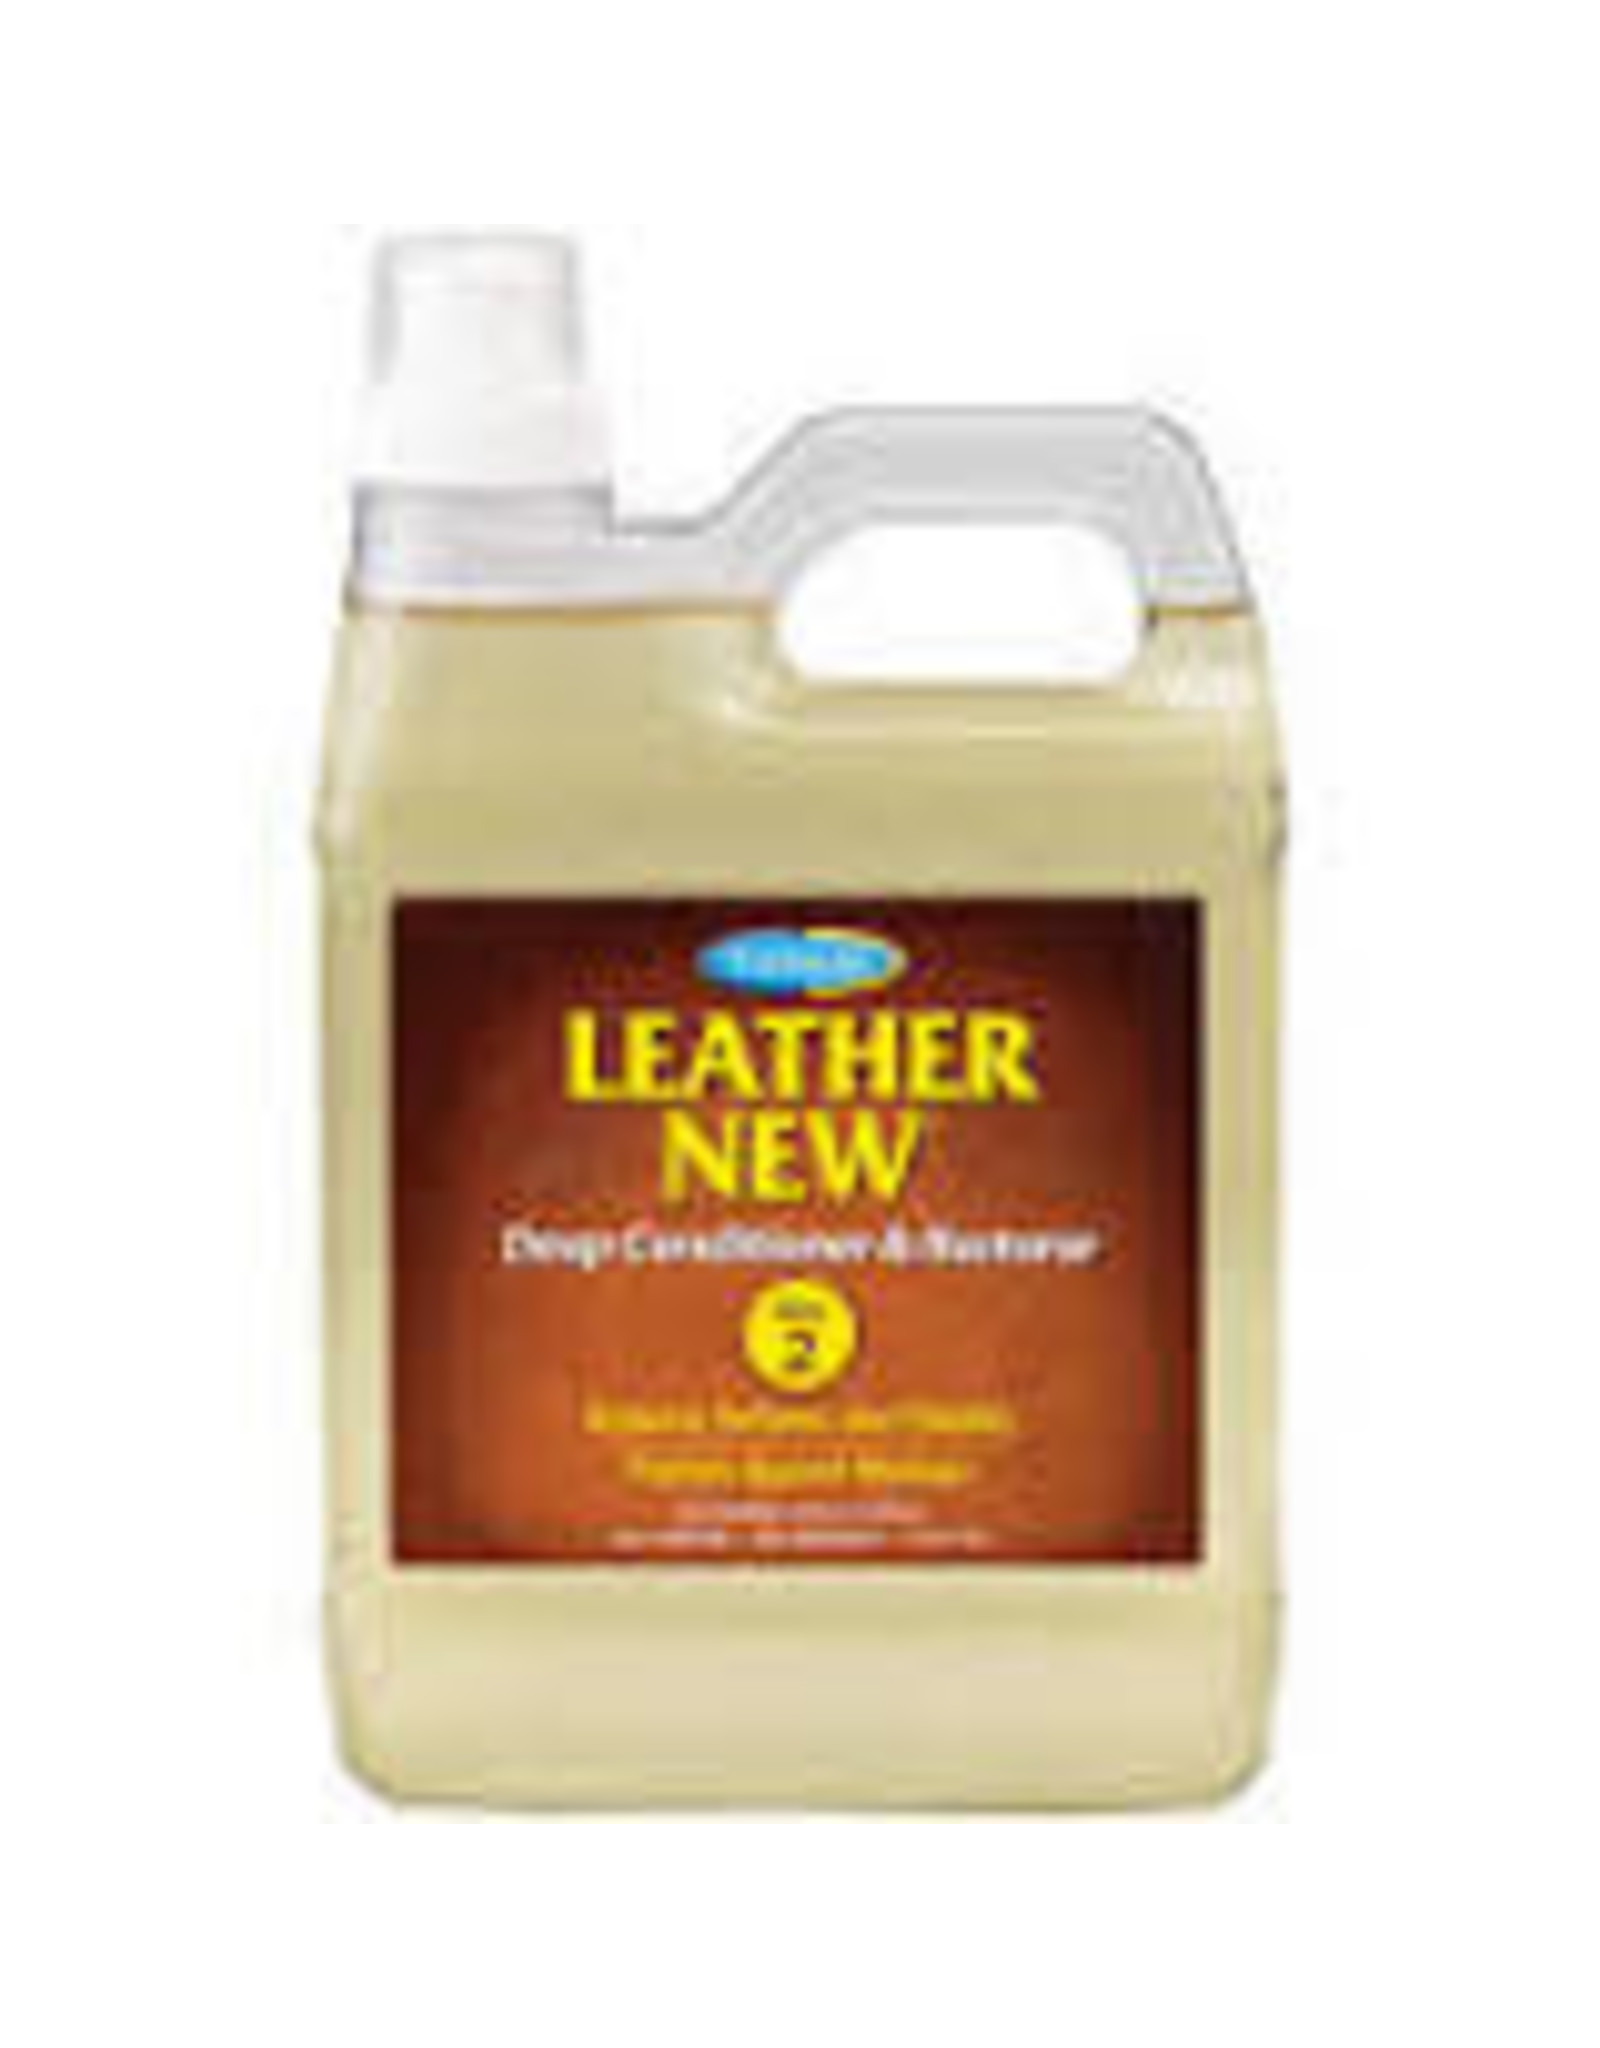 LEATHER NEW DEEP CONDITIONER 30oz